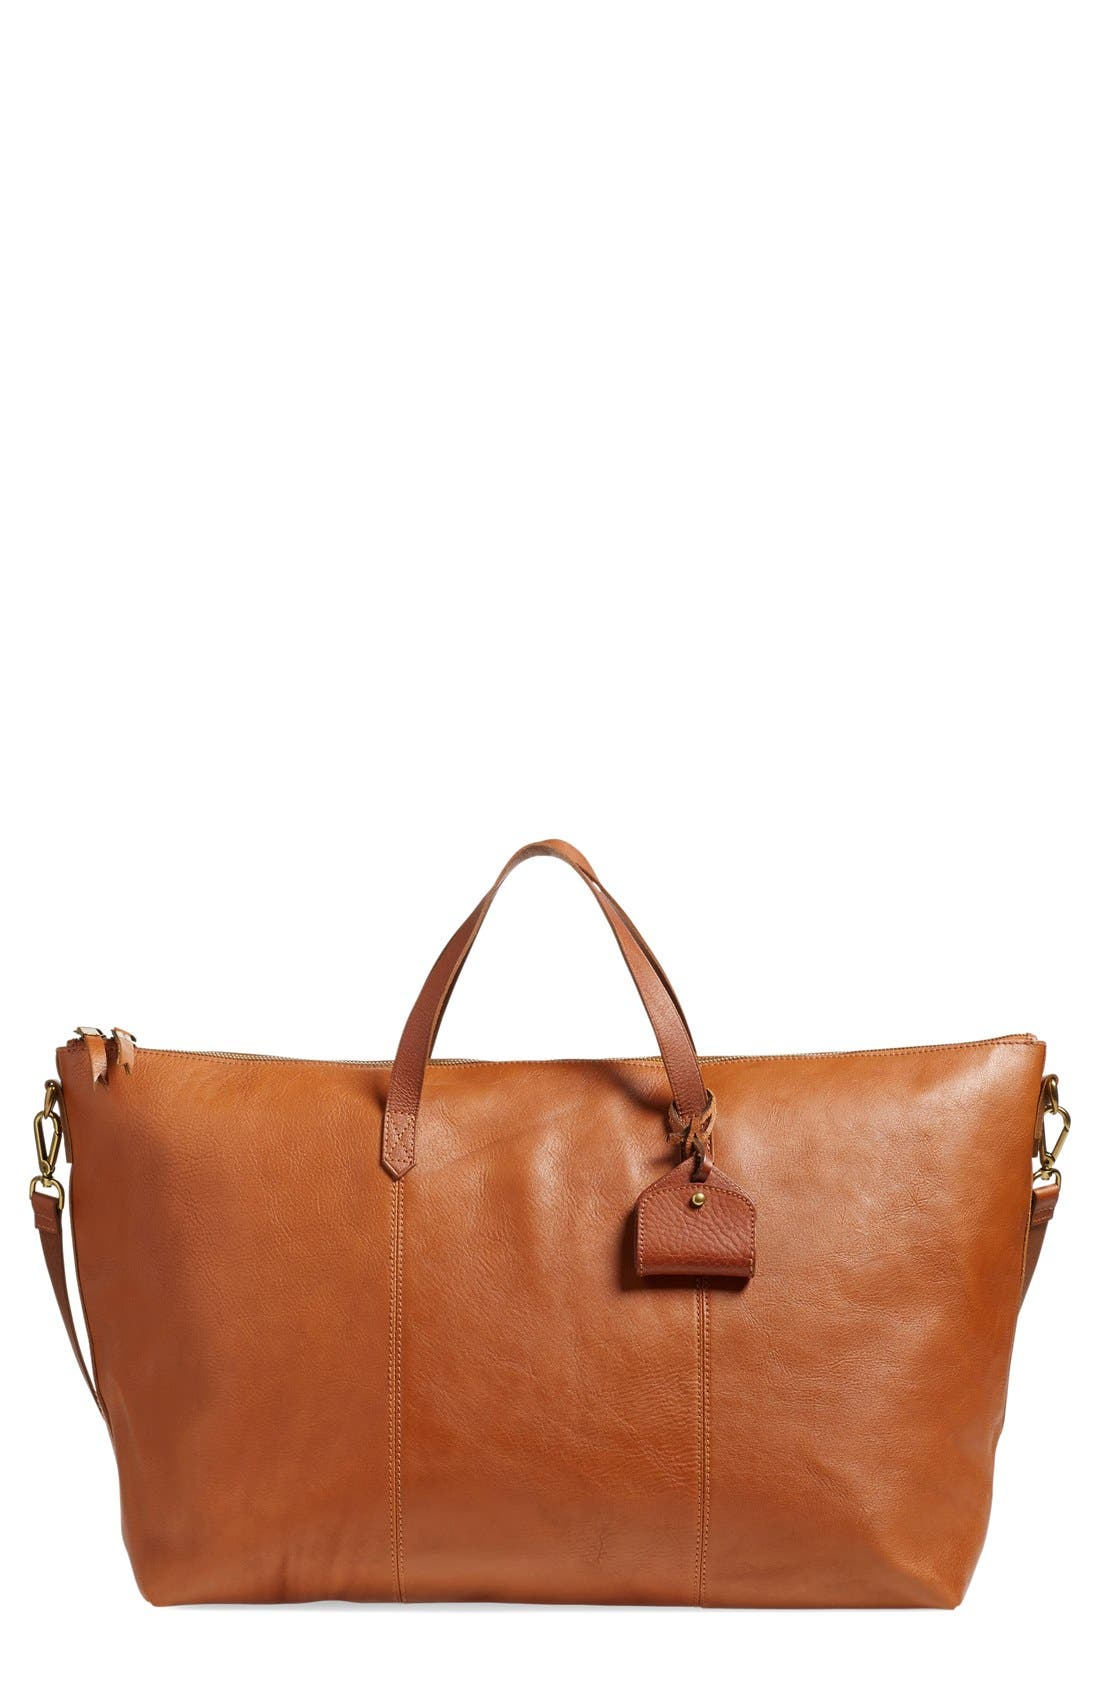 Main Image - Madewell 'Transport' Weekend Bag